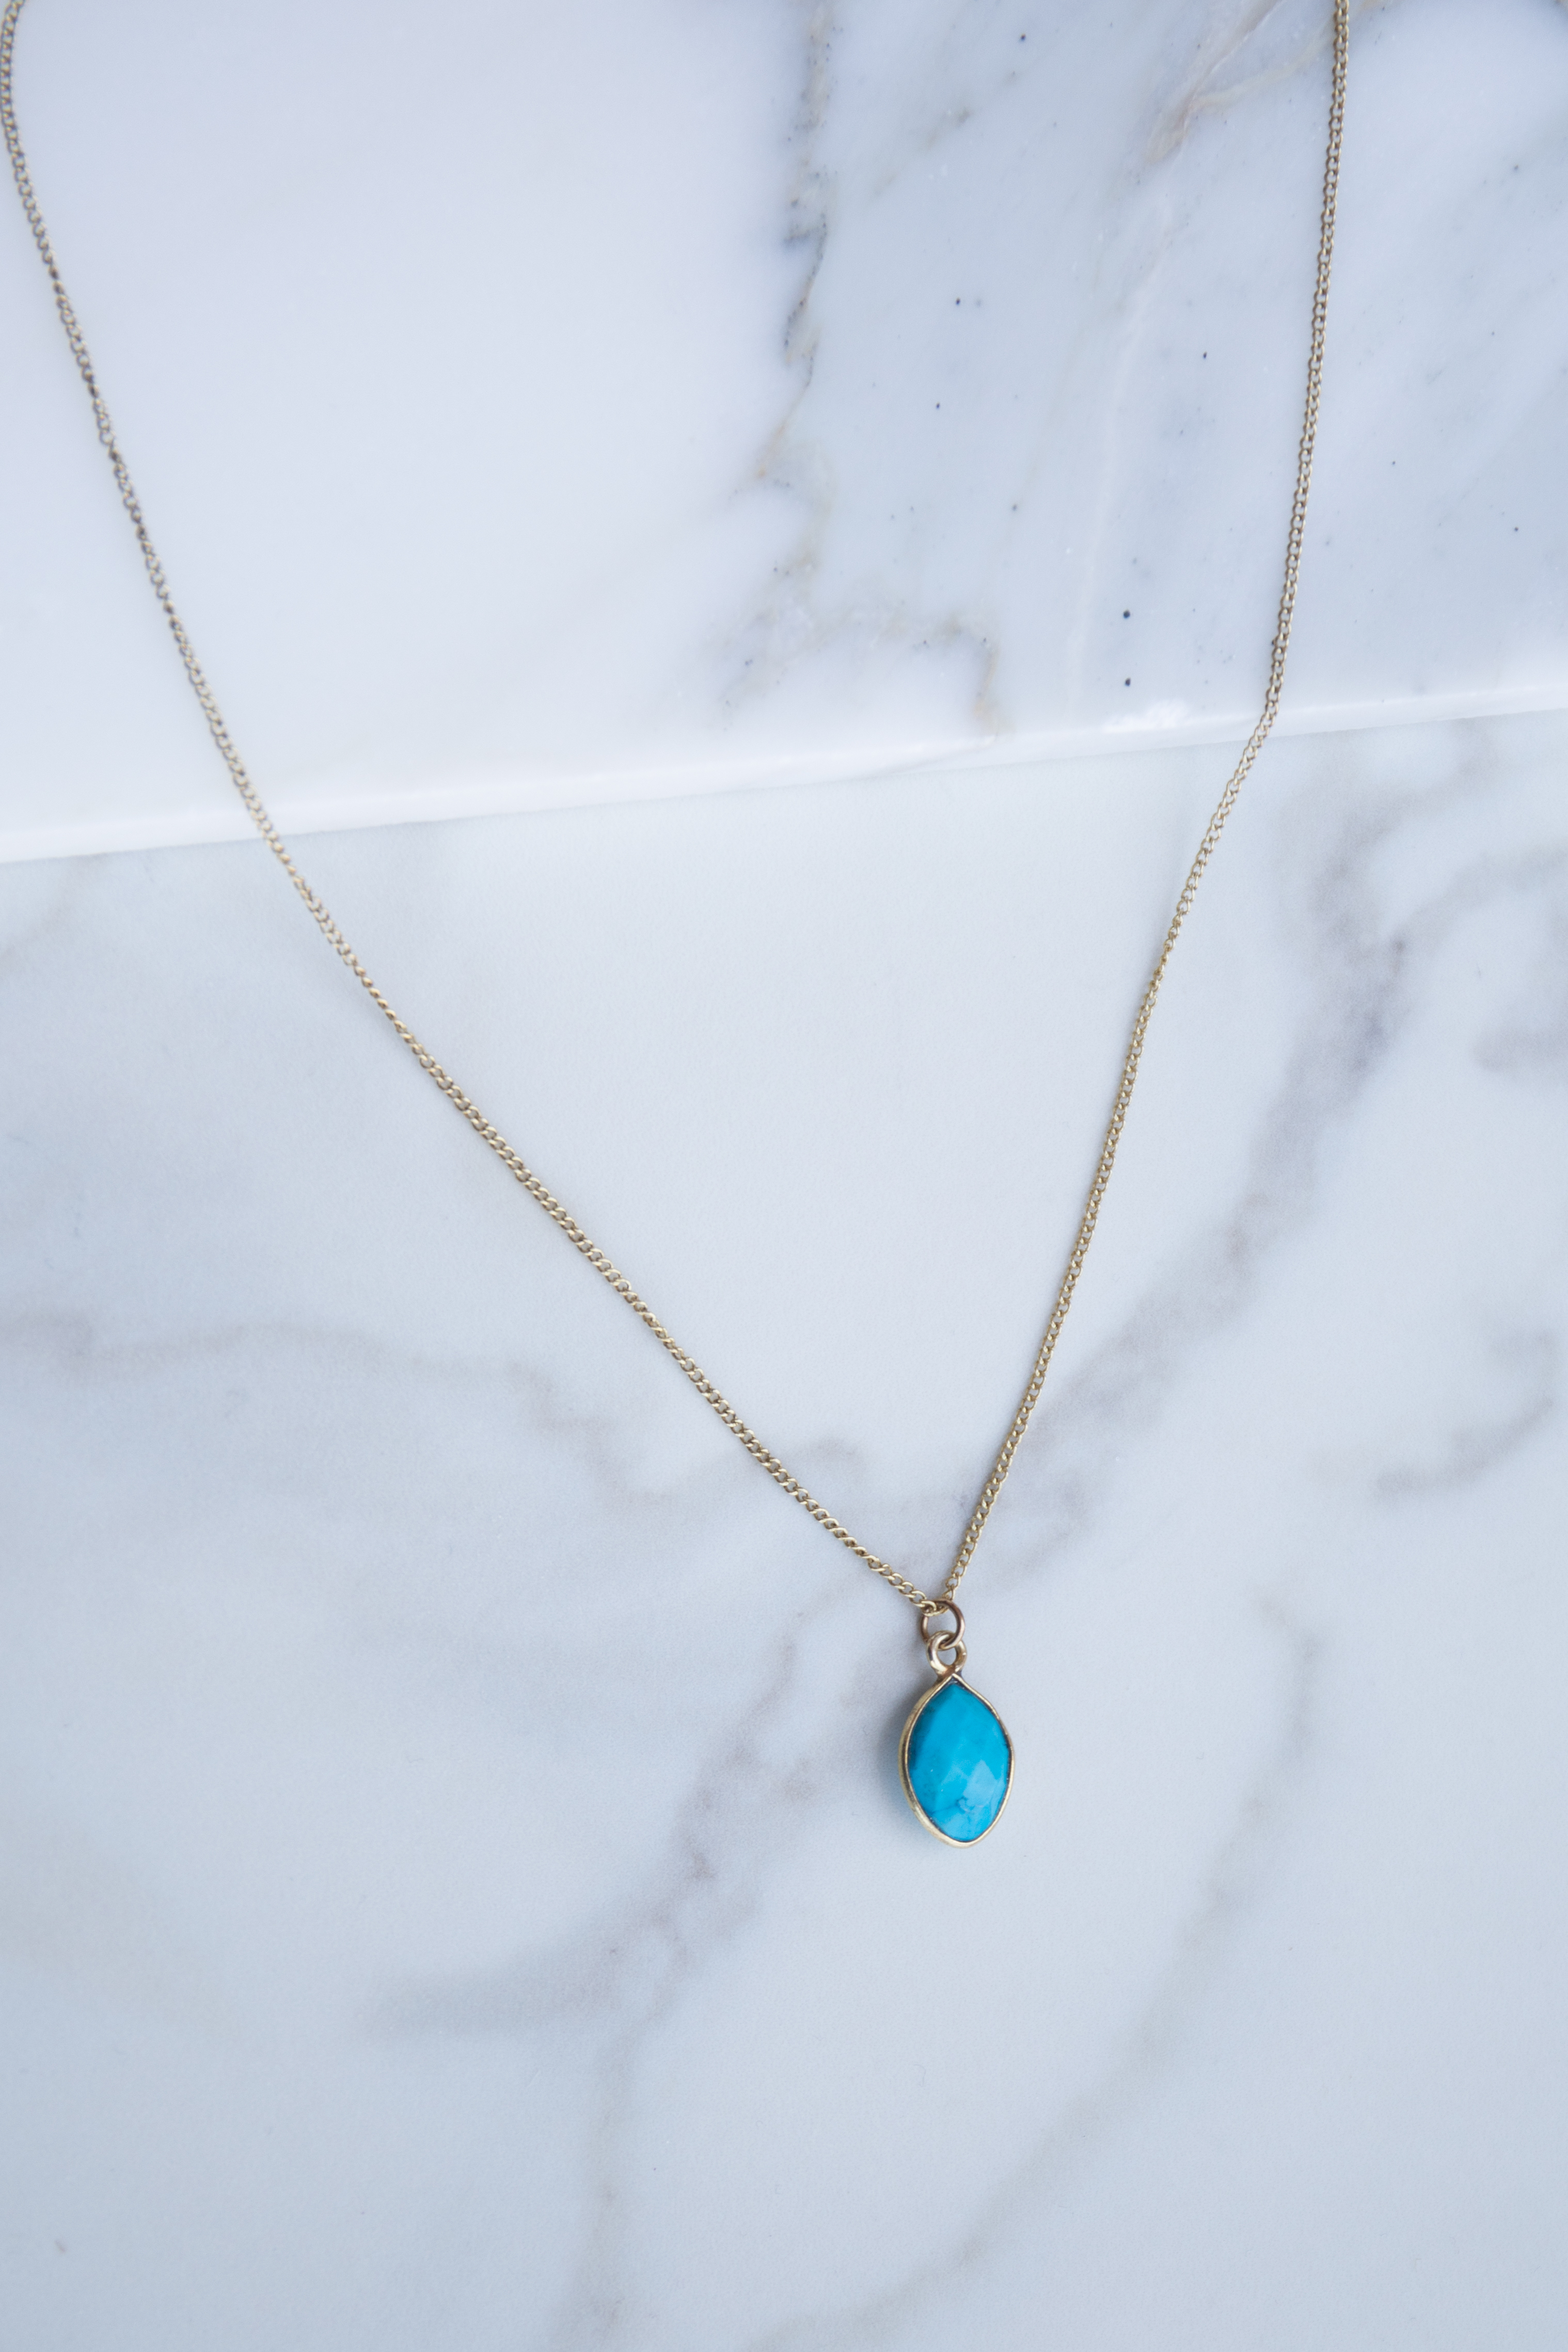 Antique Gold Necklace with Cerulean Stone Pendant